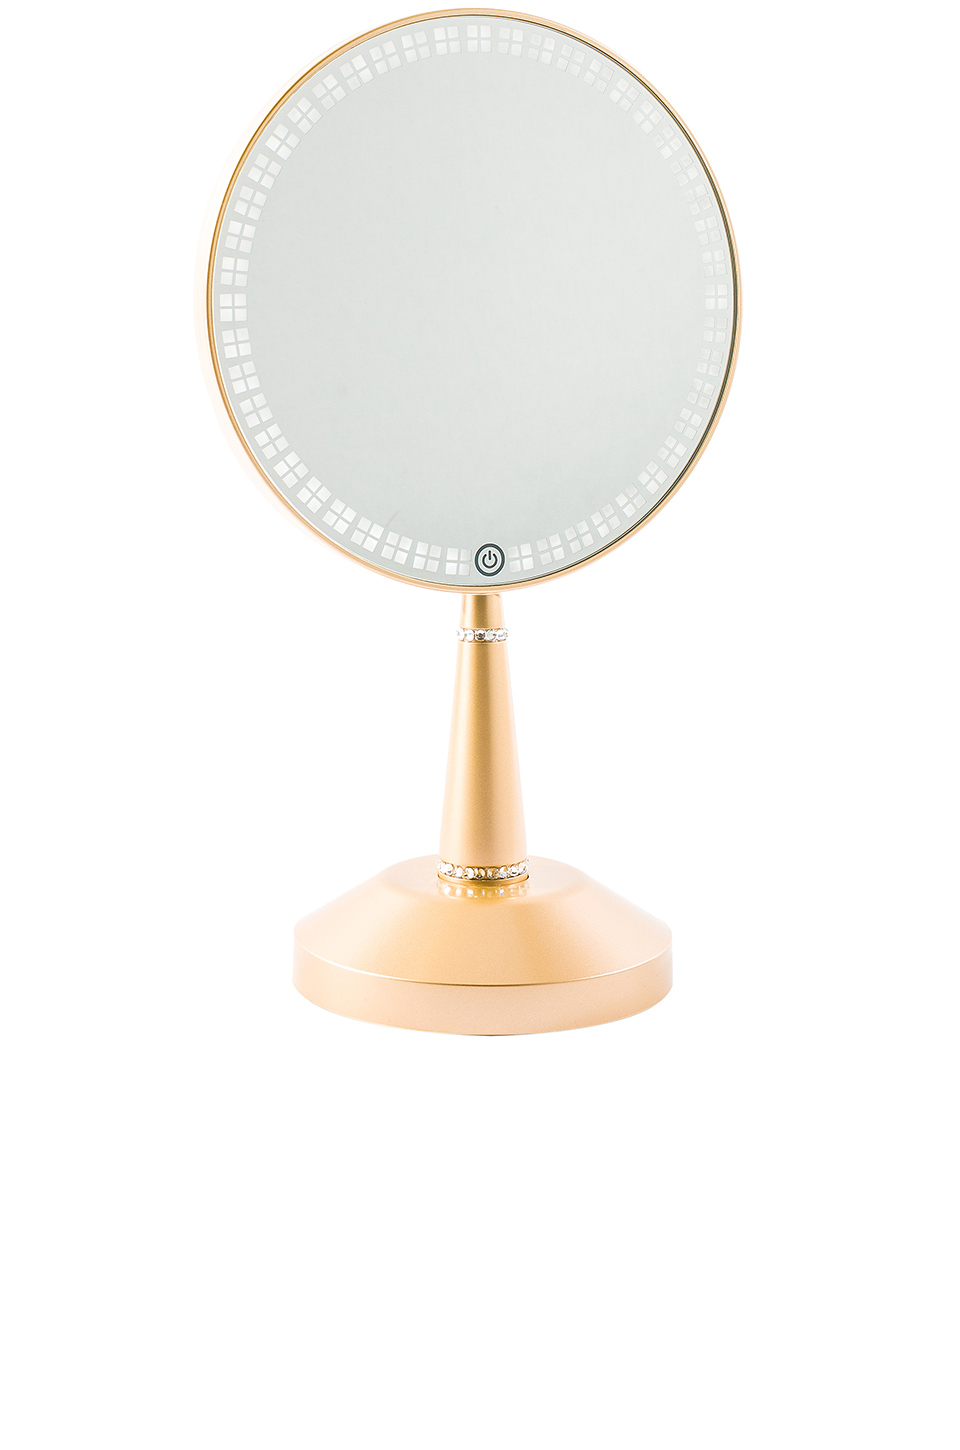 Impressions Vanity Bijou LED Hand Mirror with Charging Stand in Champagne Gold